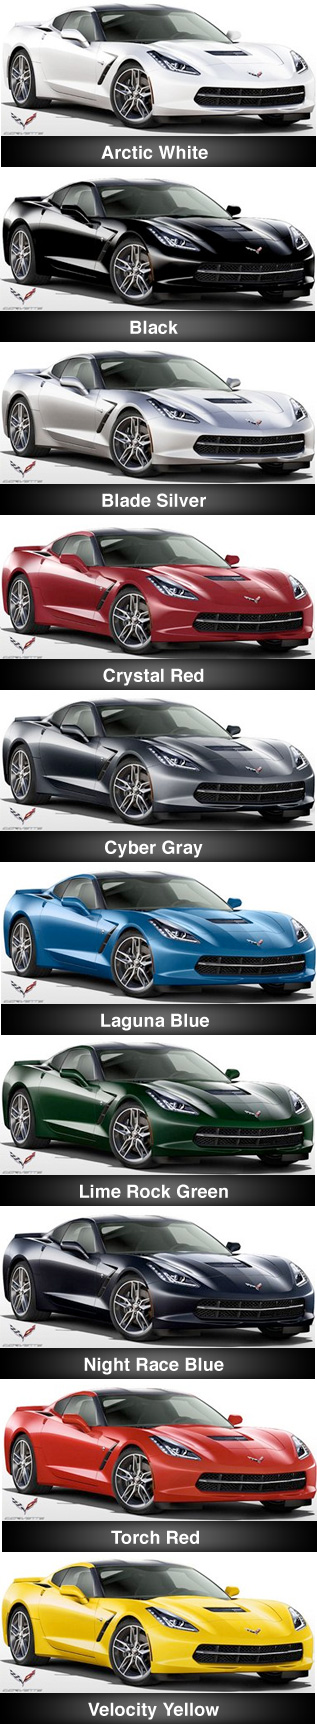 2014 corvette stingray features in chicago il apps directories. Cars Review. Best American Auto & Cars Review